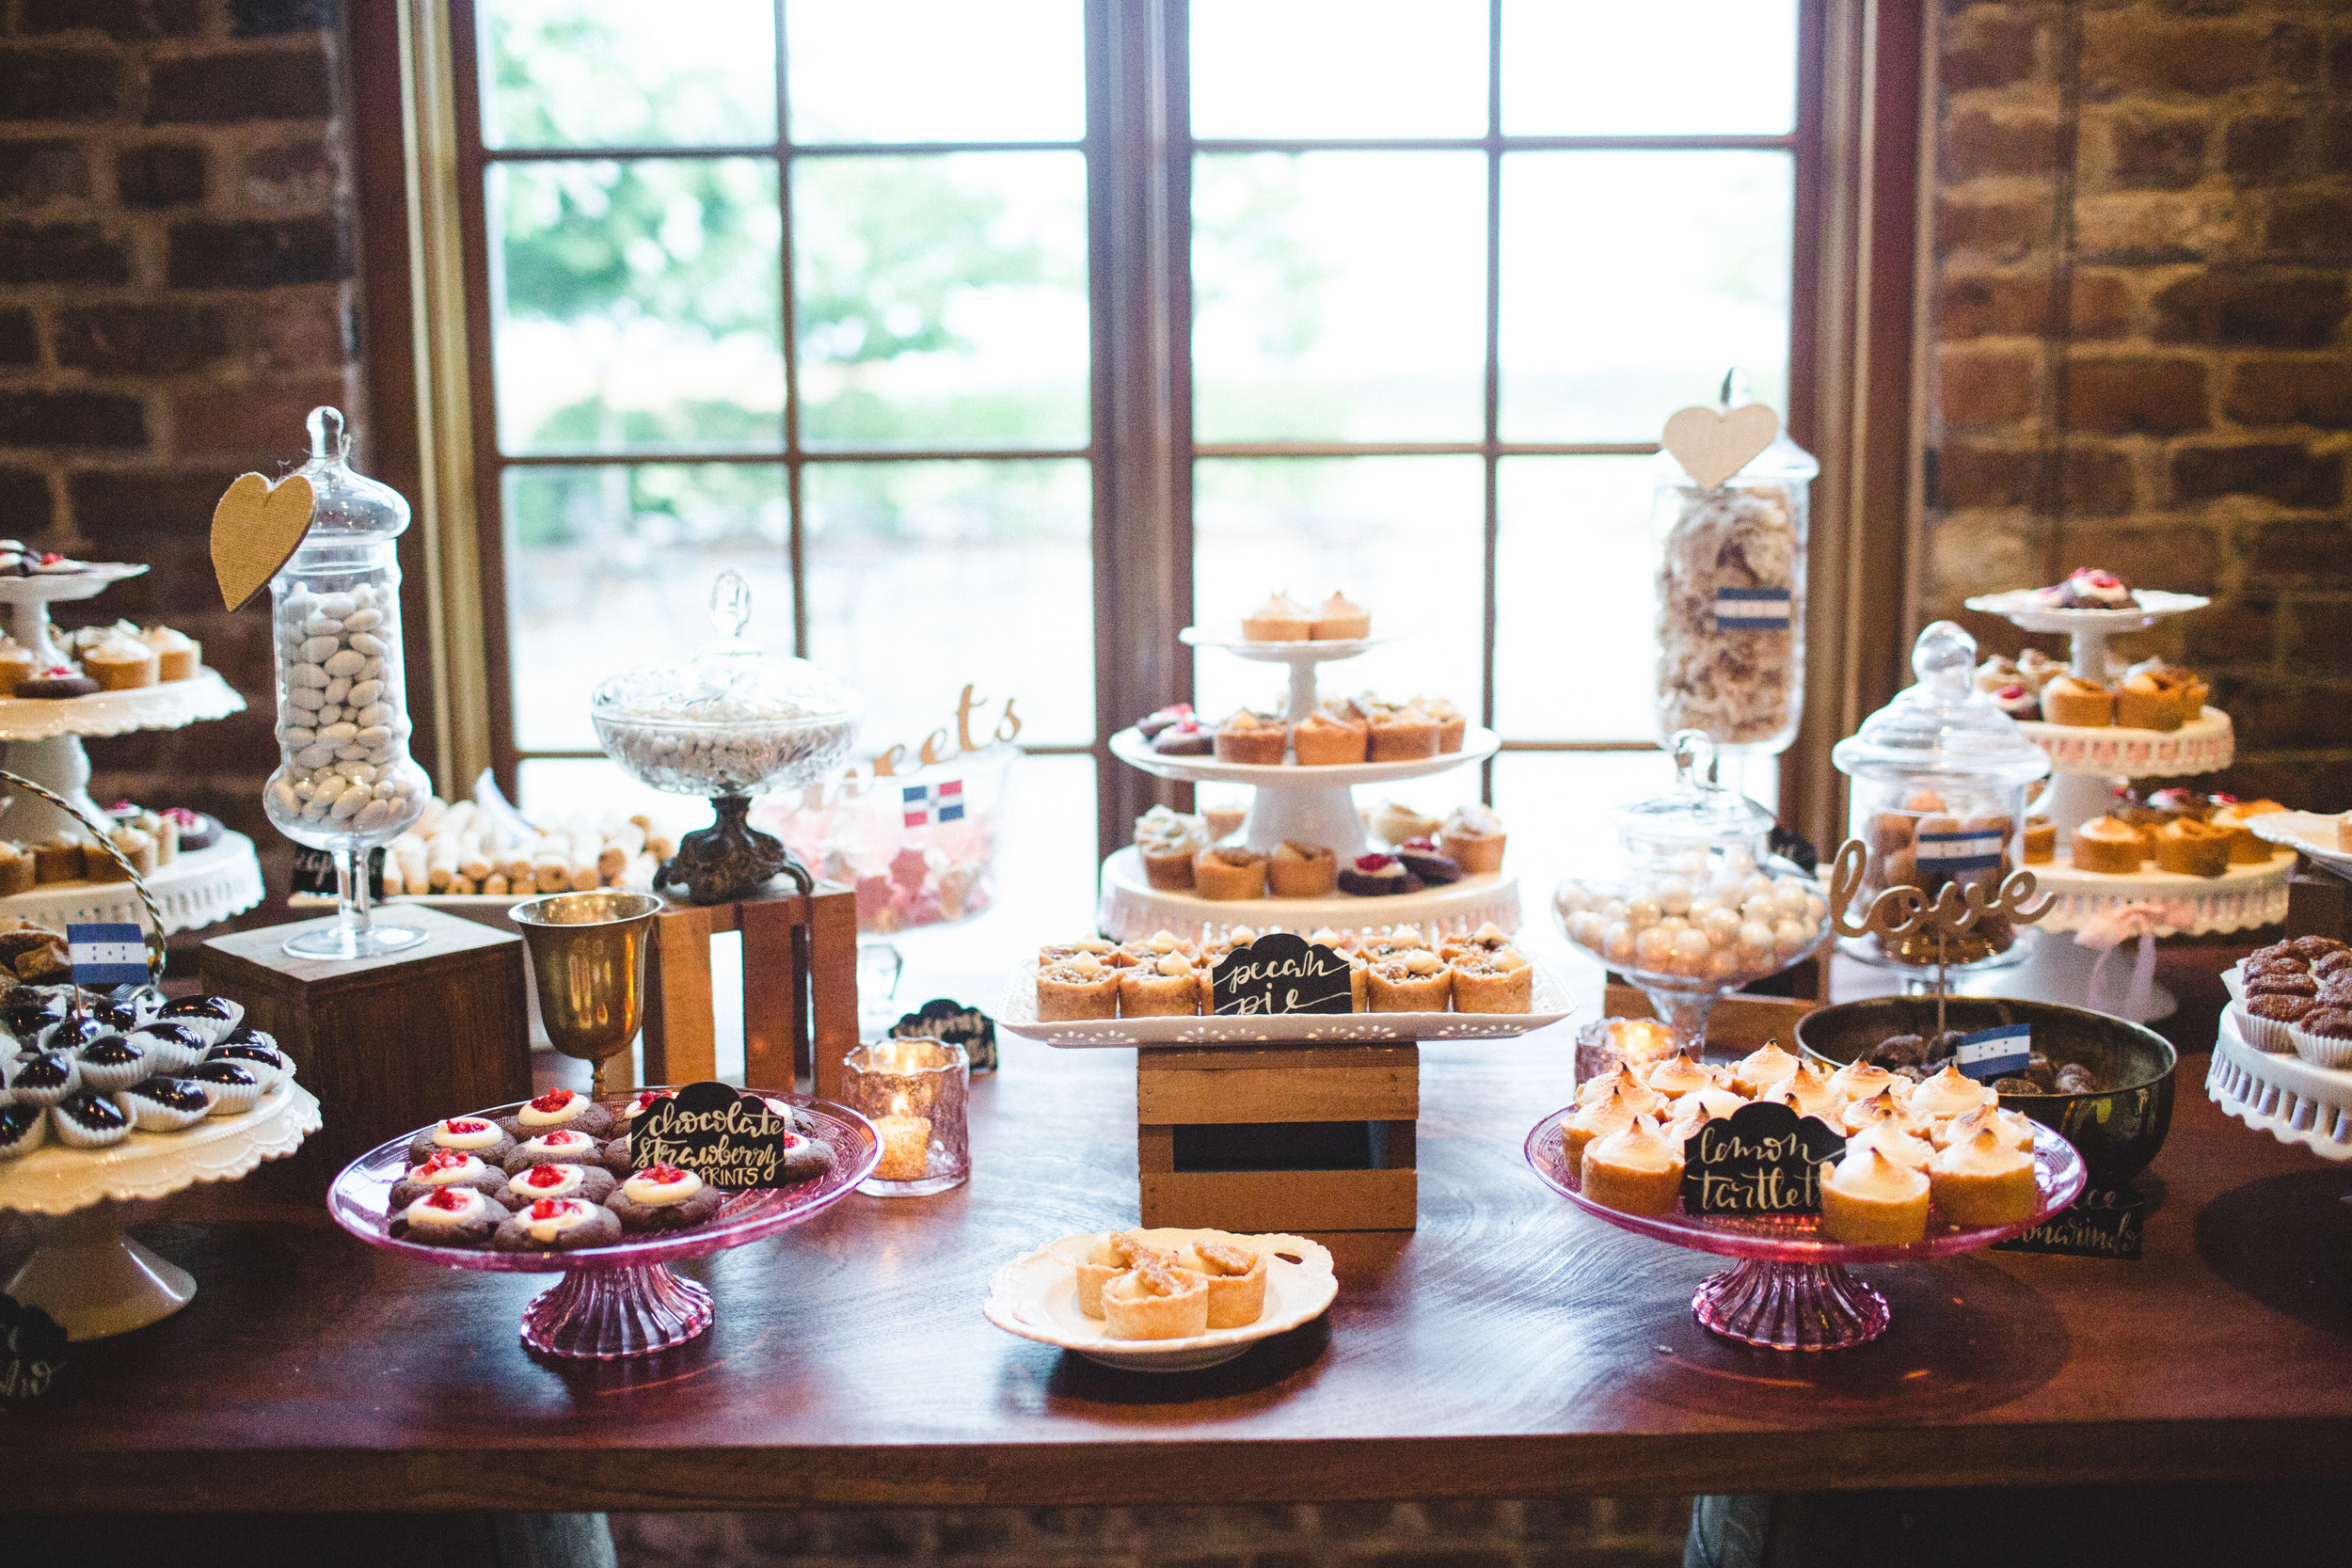 daniela-and-pedro-wedding-izzy-hudgins-photography-a-to-zinnias-whitfield-square-charles-h-morris-center-wedding-ivoyy-and-beau-bridal-boutique-dorie-hayley-paige-savannah-wedding-planner-savannah-bridal-boutique-savannah-weddings-49.jpg